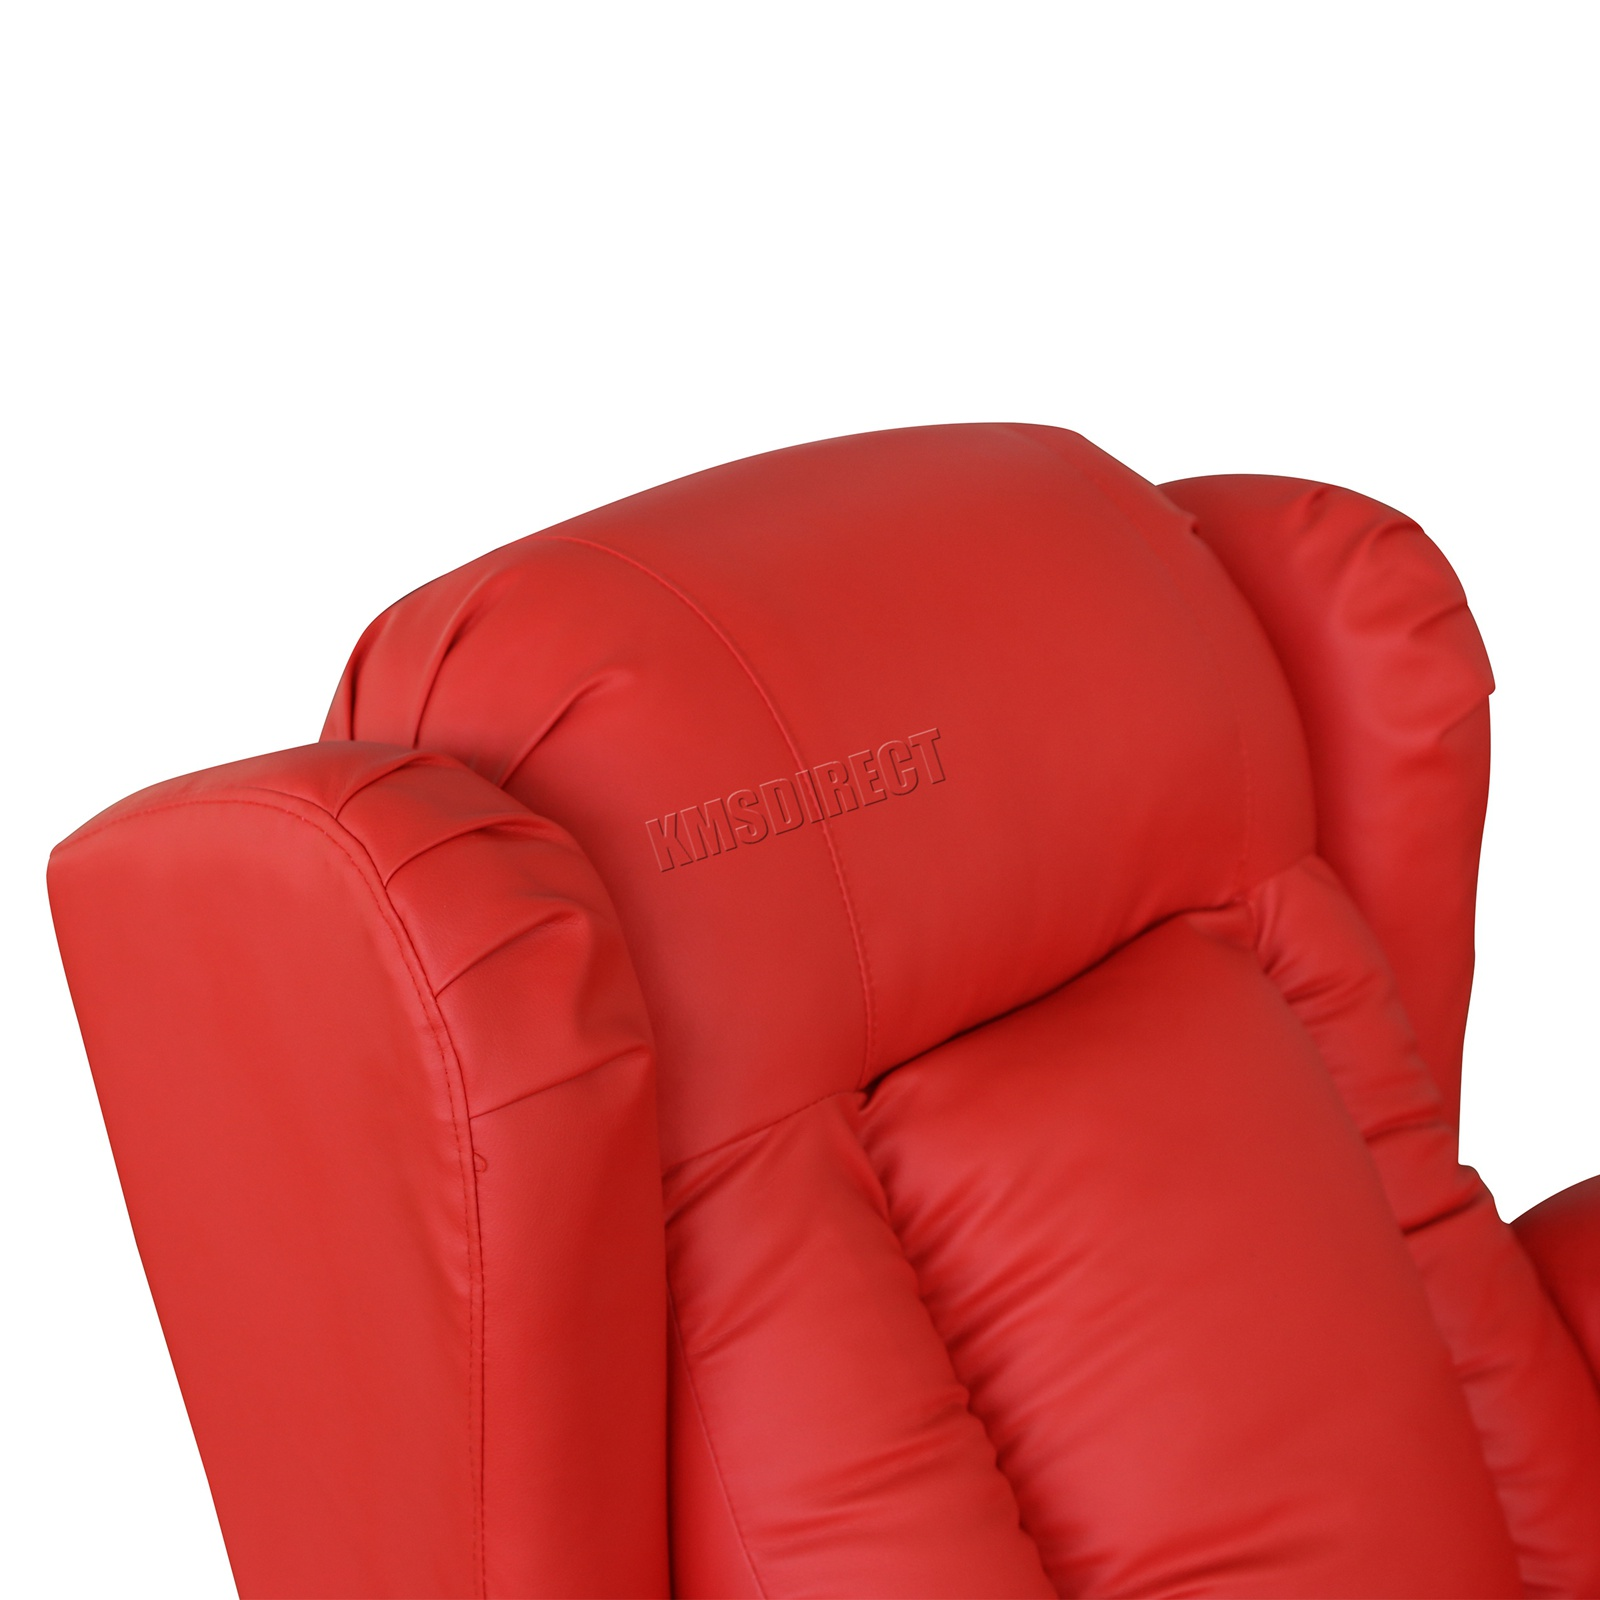 WESTWOOD-Leather-Recliner-Armchair-Swivel-Heated-chair-Massage-Gaming-Chair thumbnail 54